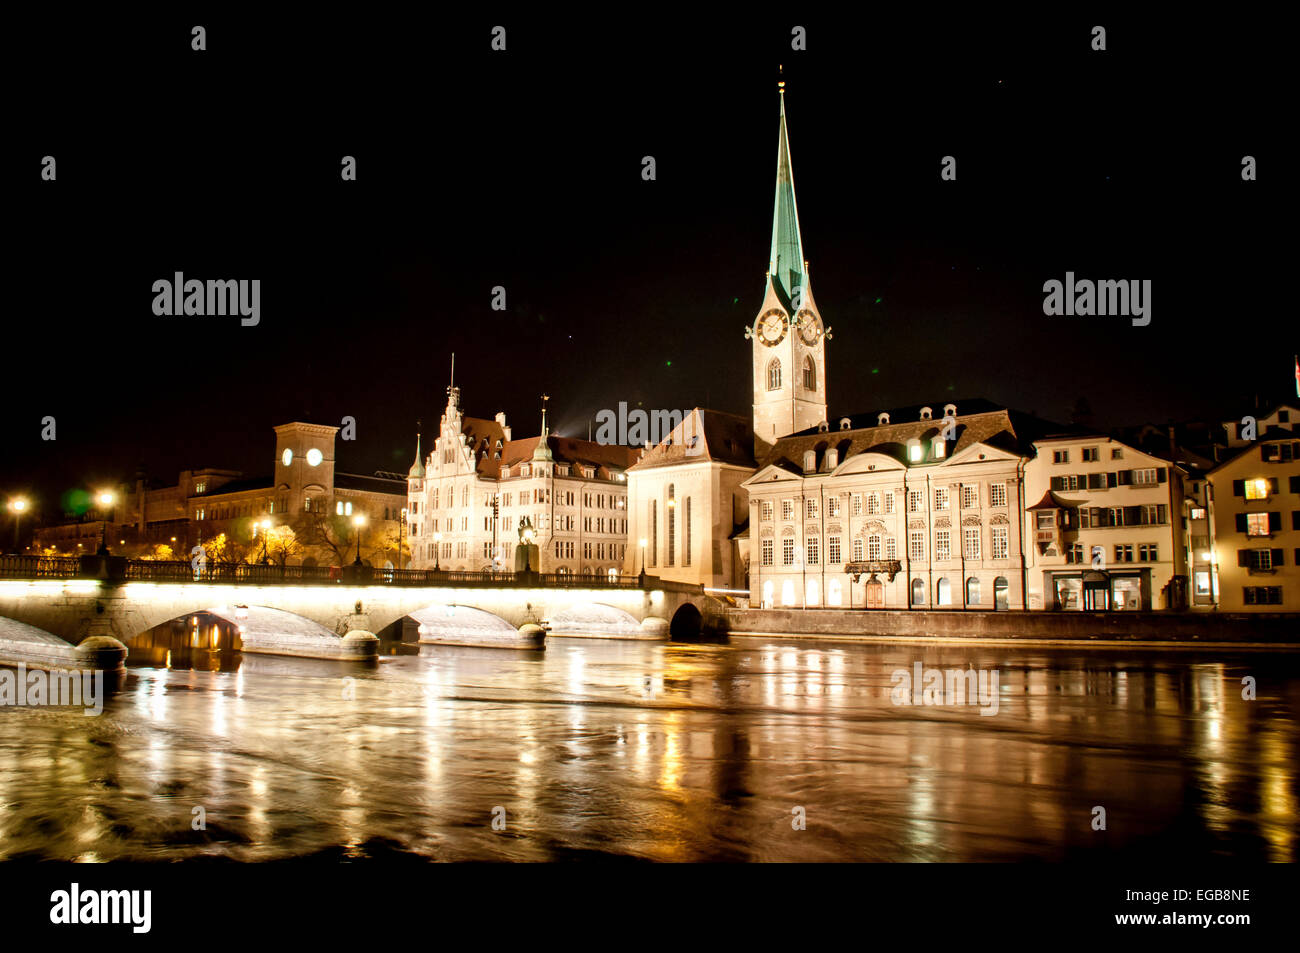 Night time in downtown Zurich, Switzerland. View of the Fraumunster church over the Limmat River. - Stock Image